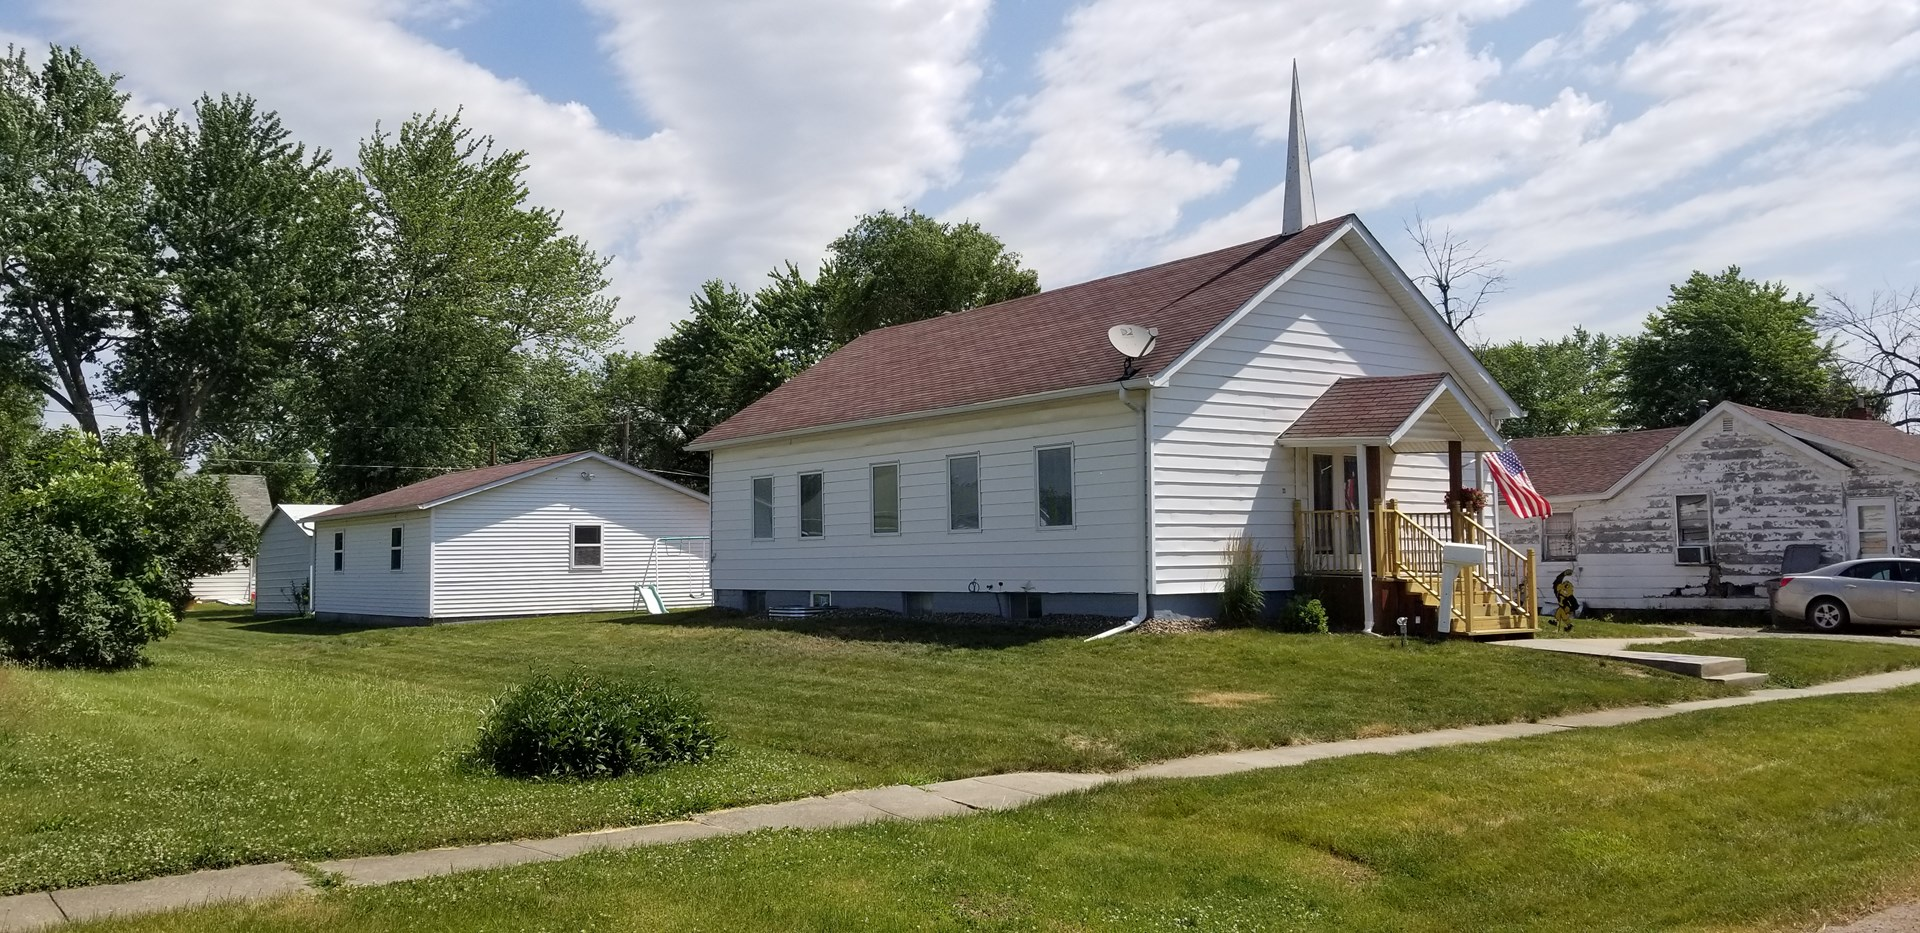 Move In Ready Albia Home for Sale